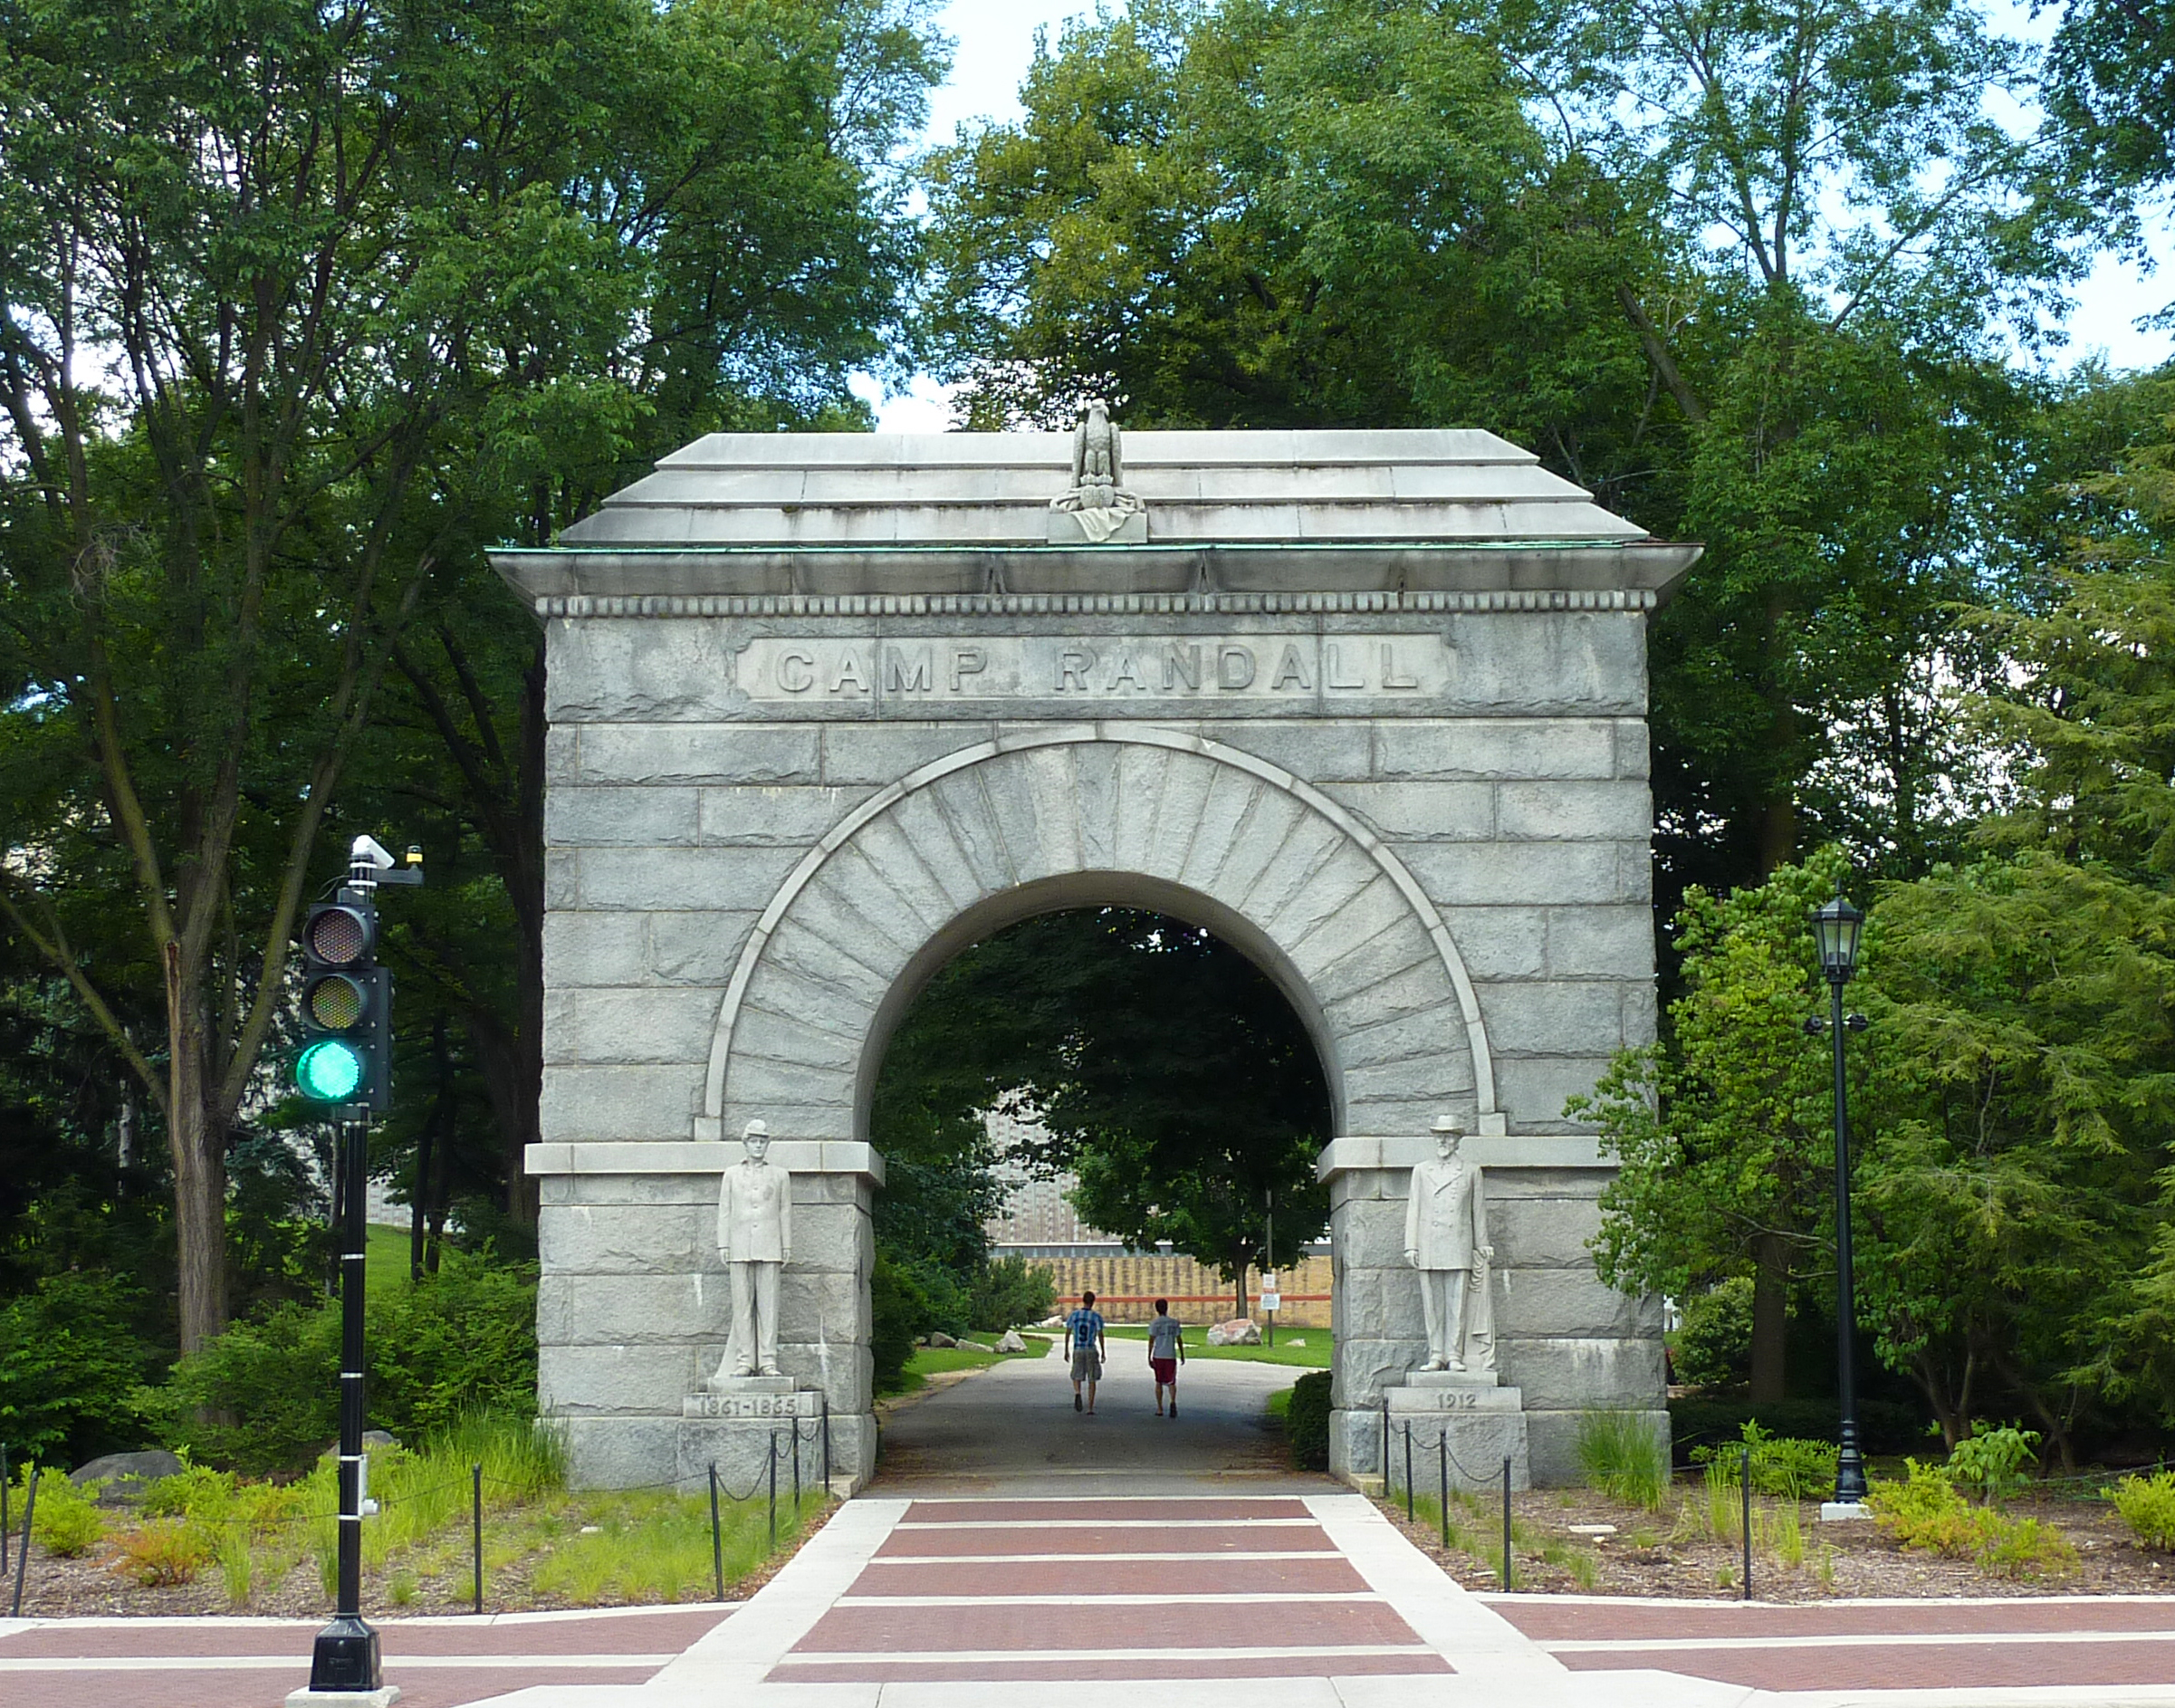 File:Camp Randall arch (2).jpg - Wikimedia Commons